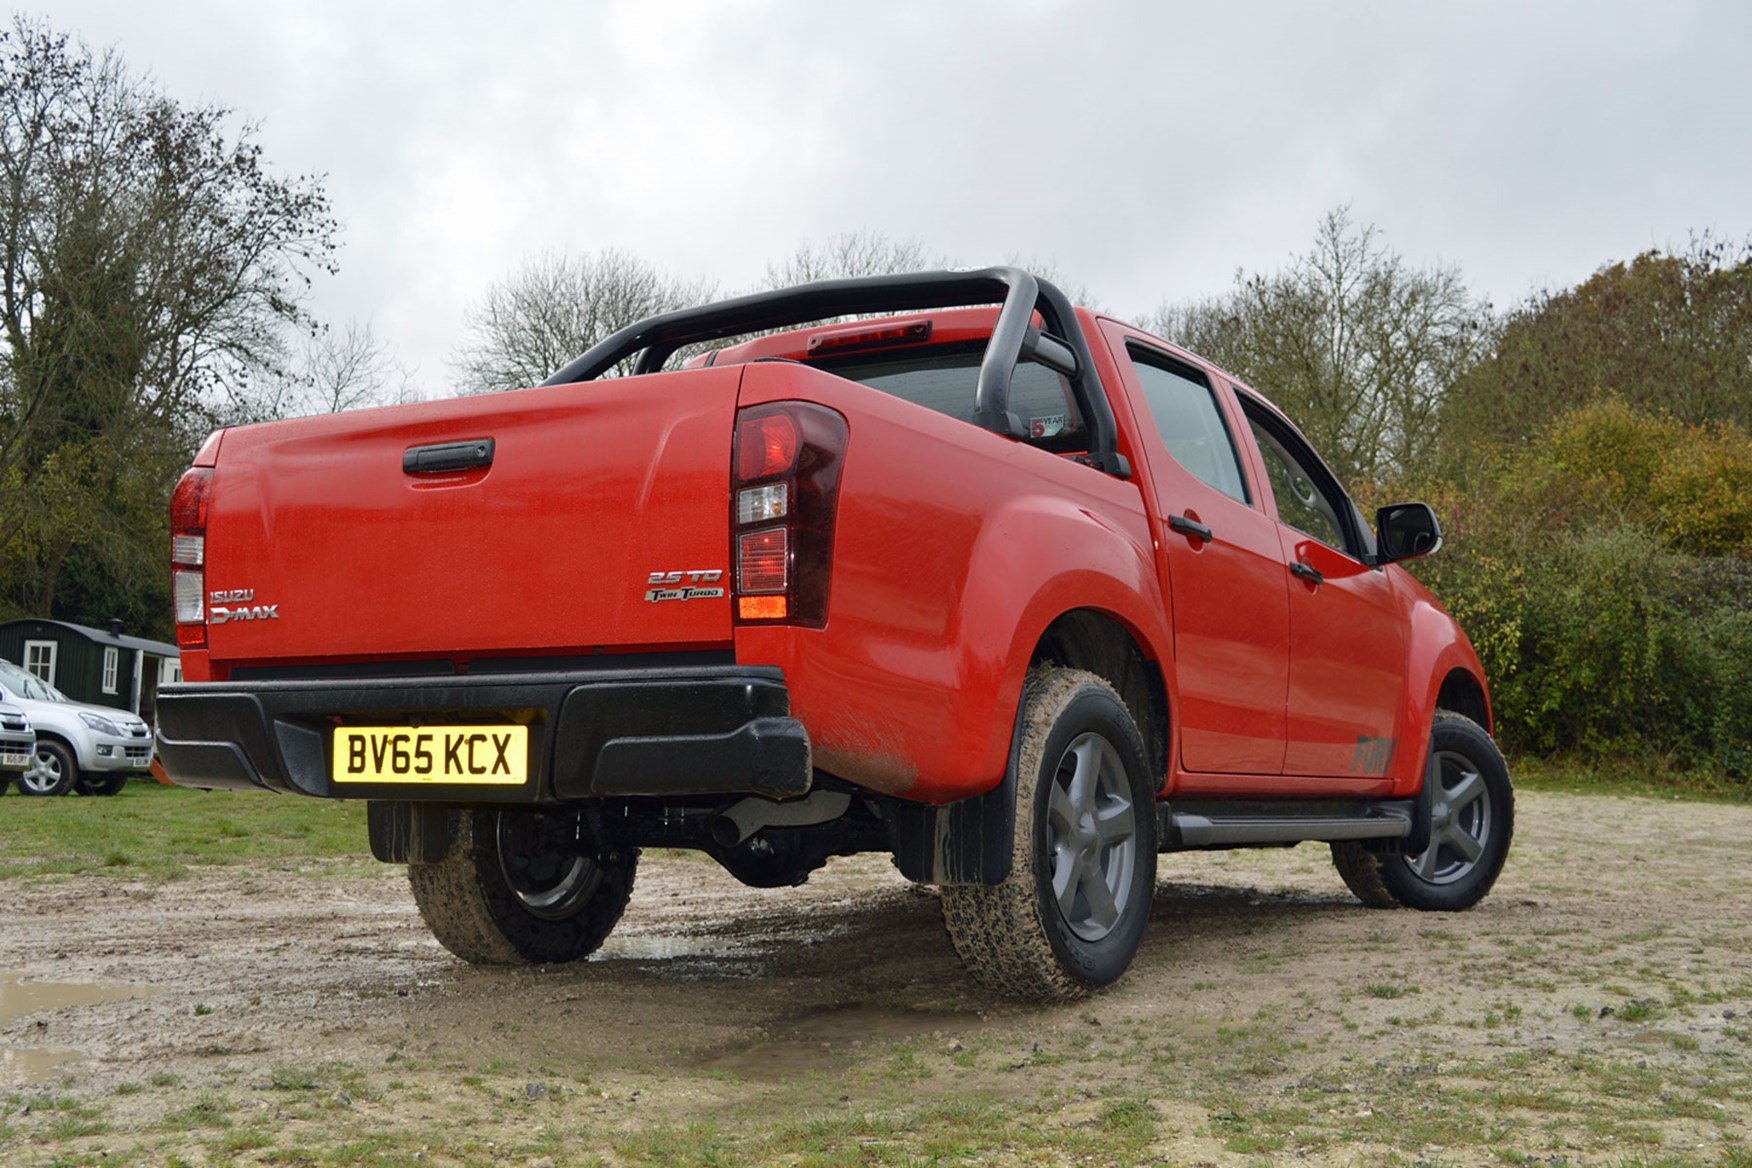 Isuzu D-Max Fury 2.5 review - rear view, red, tailgate open